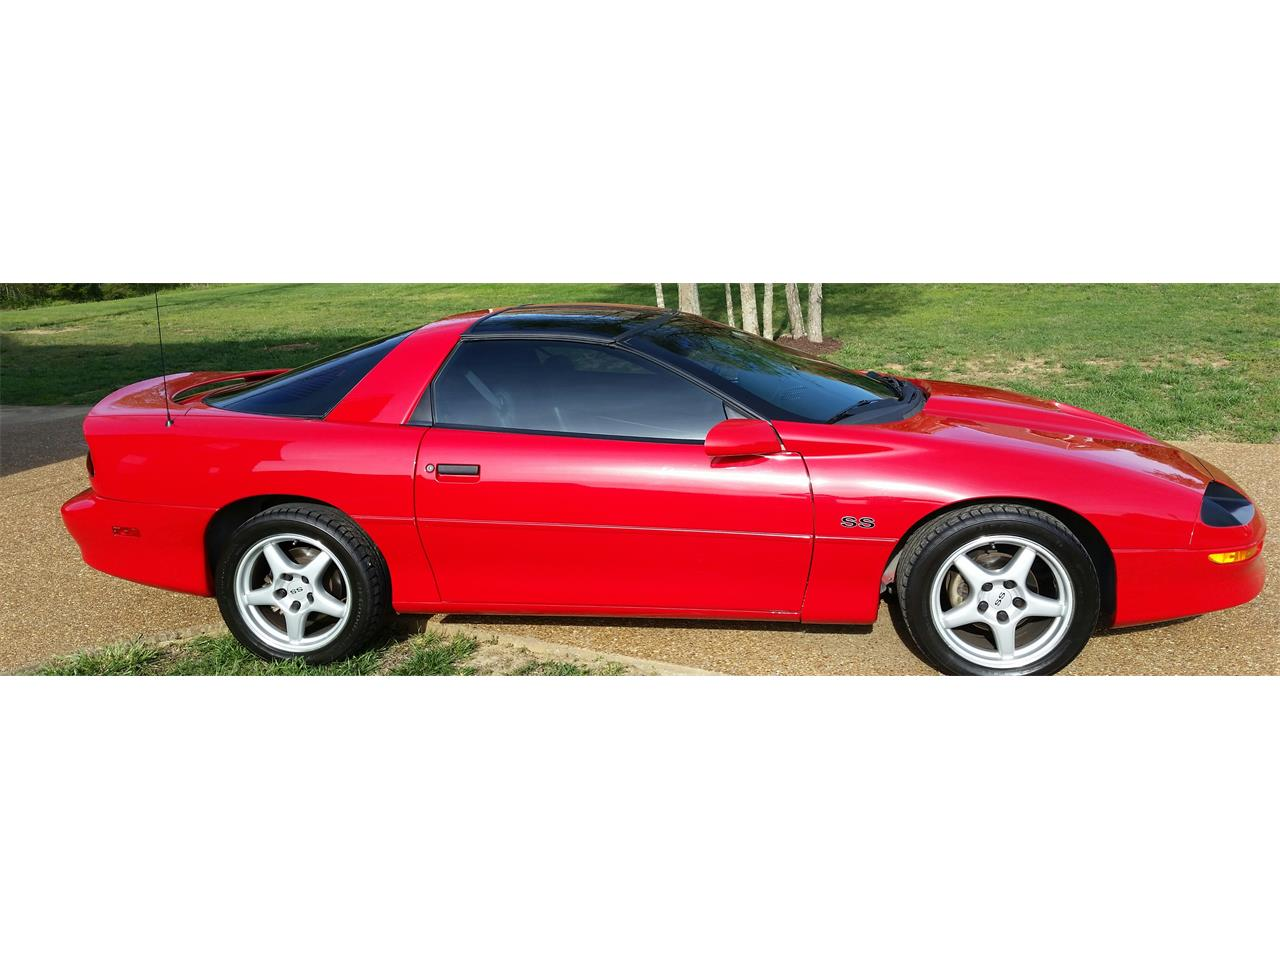 Large Picture of 1997 Chevrolet Camaro SS Z28 Offered by a Private Seller - KW6A